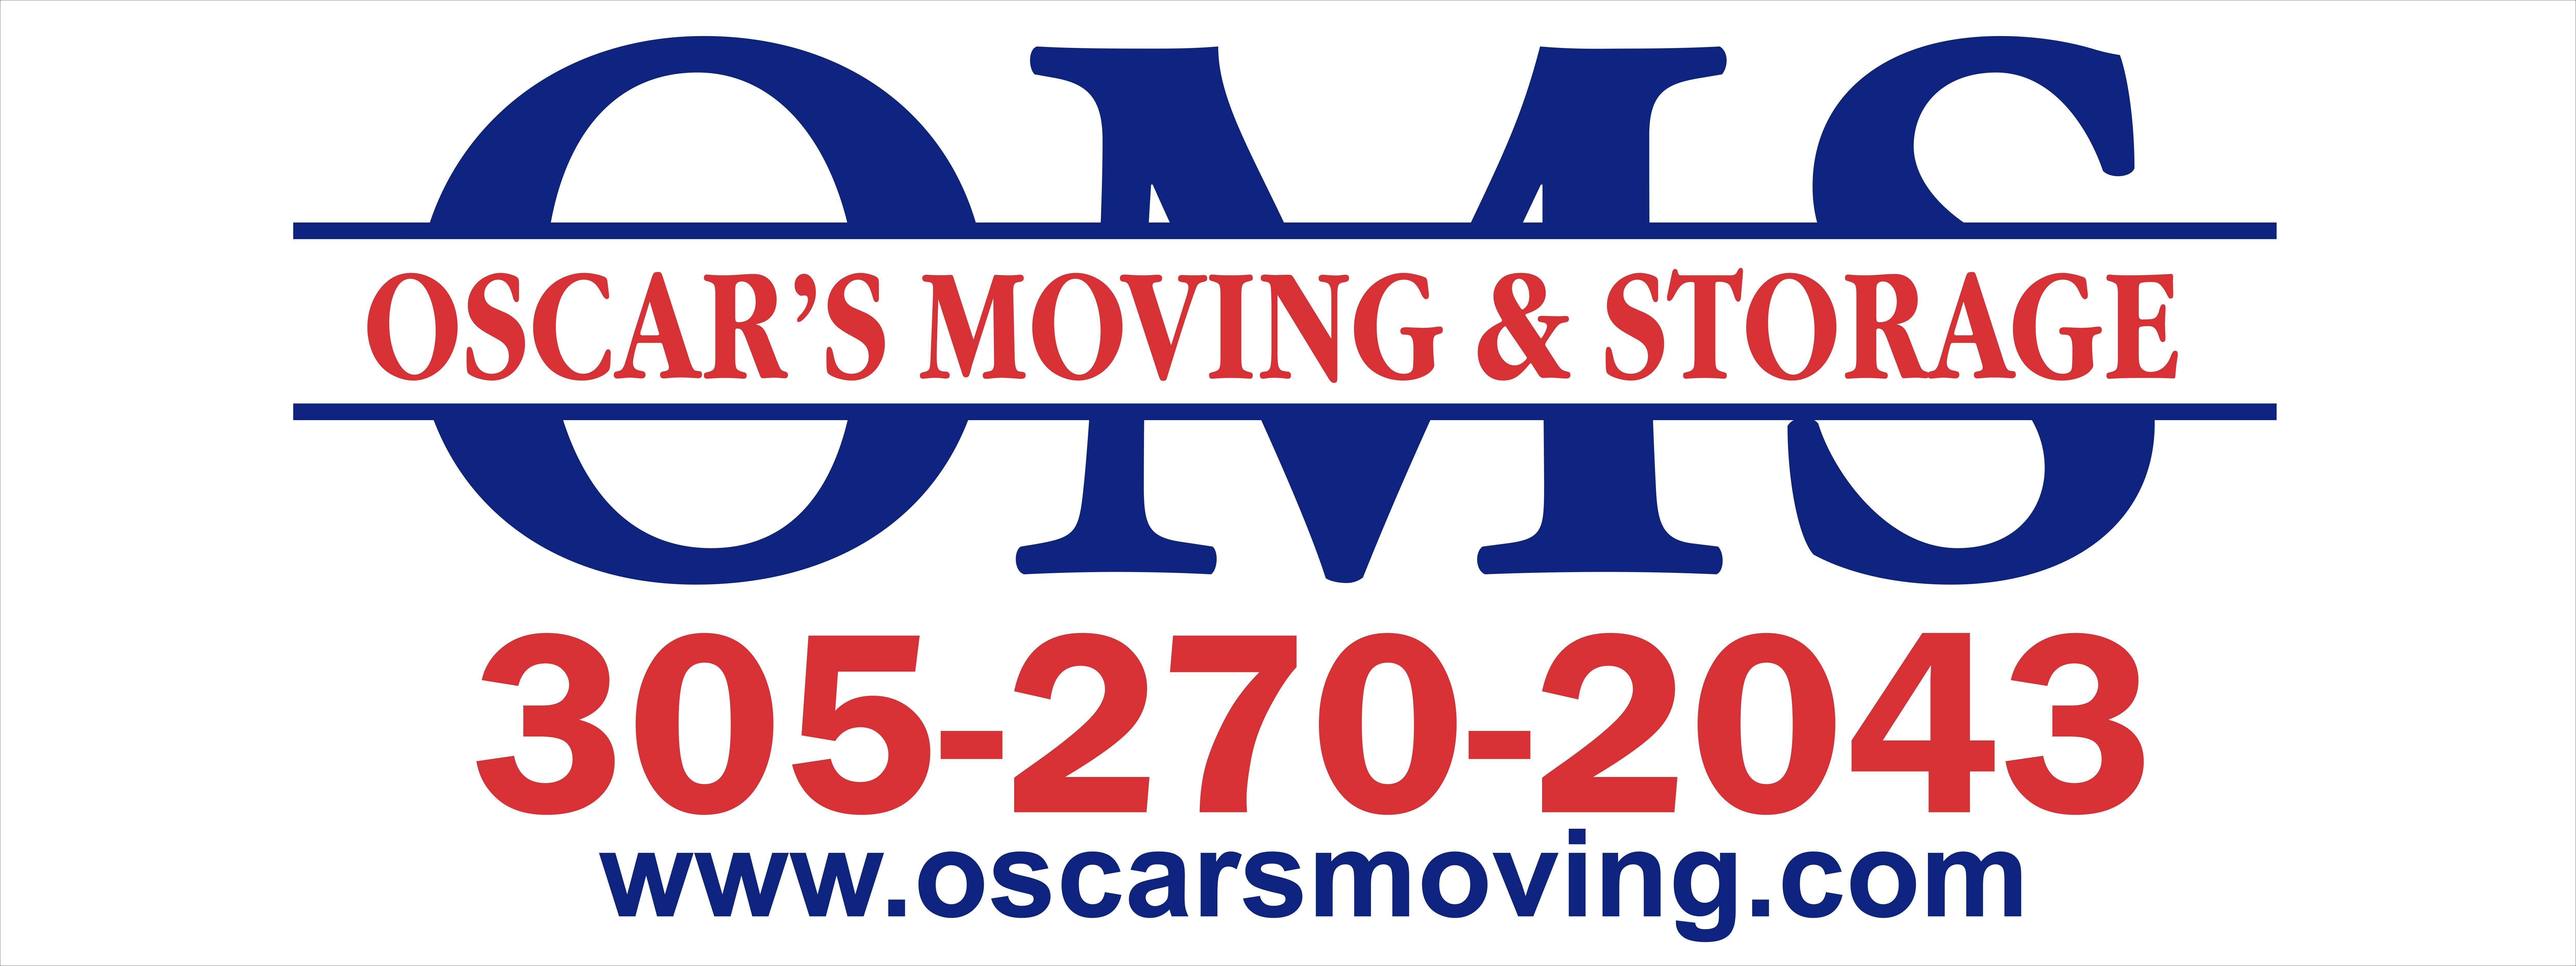 Oscar's Moving and Storage - Miami, FL - Movers